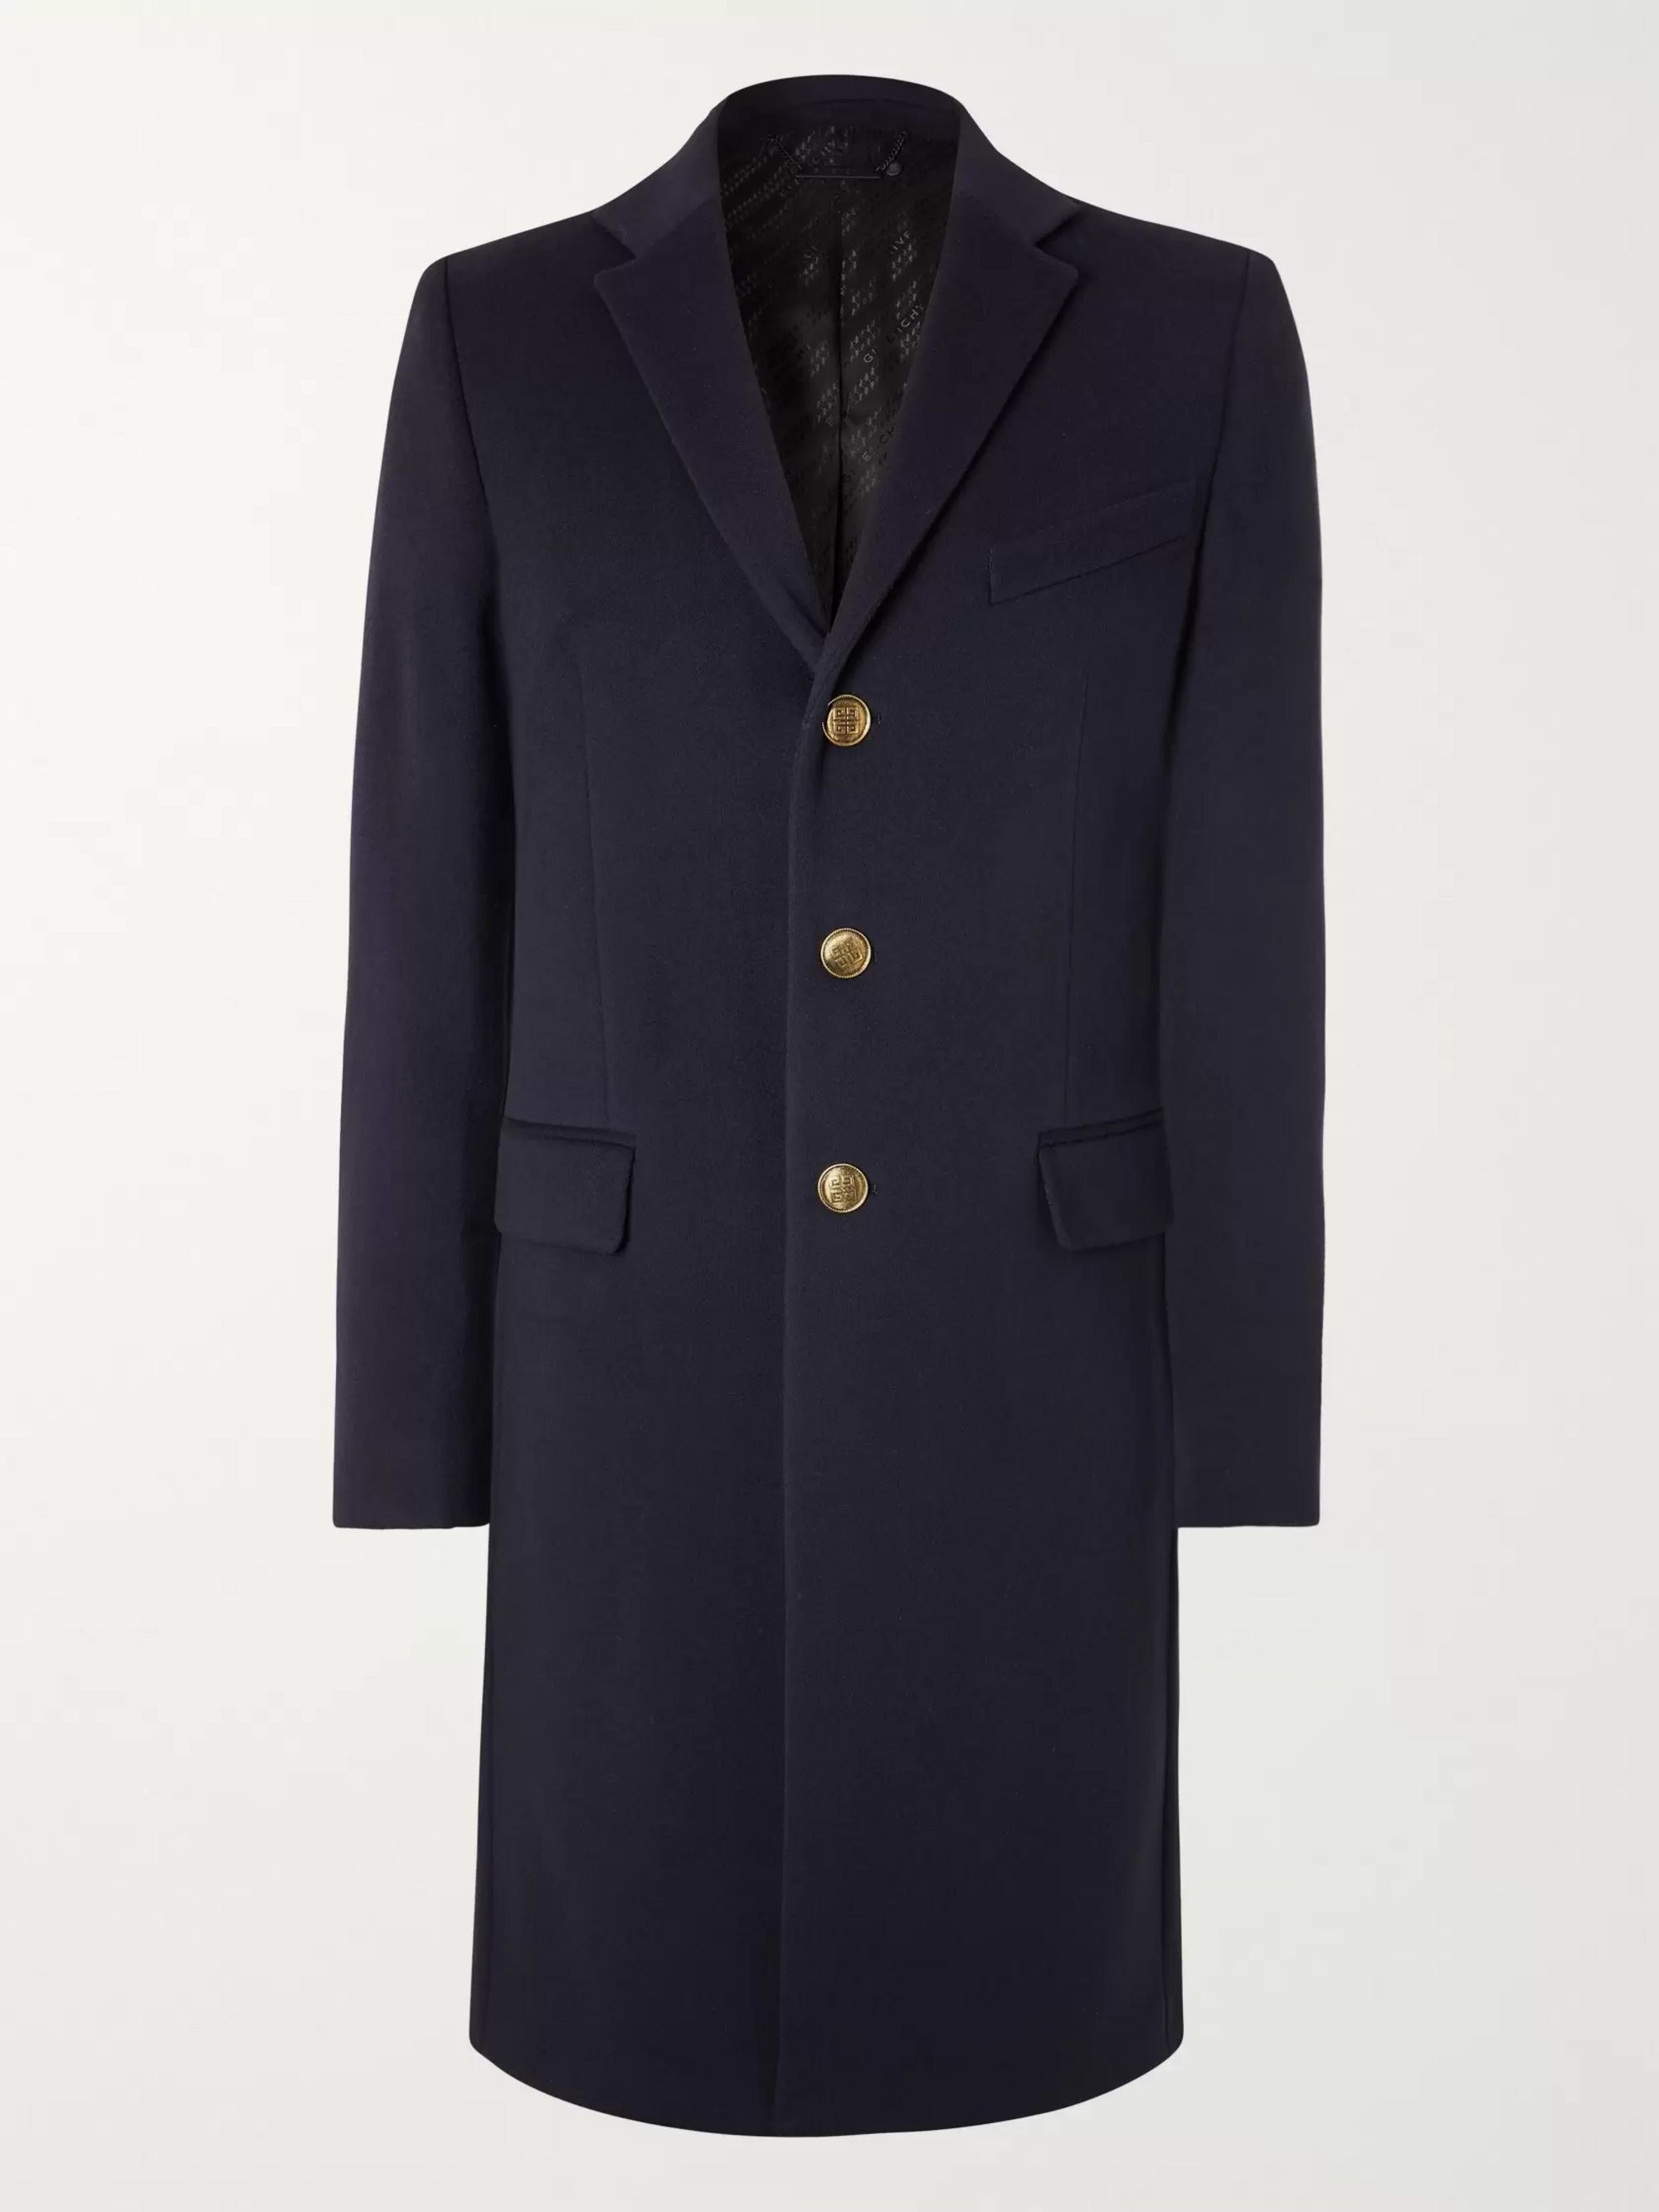 Givenchy Wool and Cashmere-Blend Overcoat